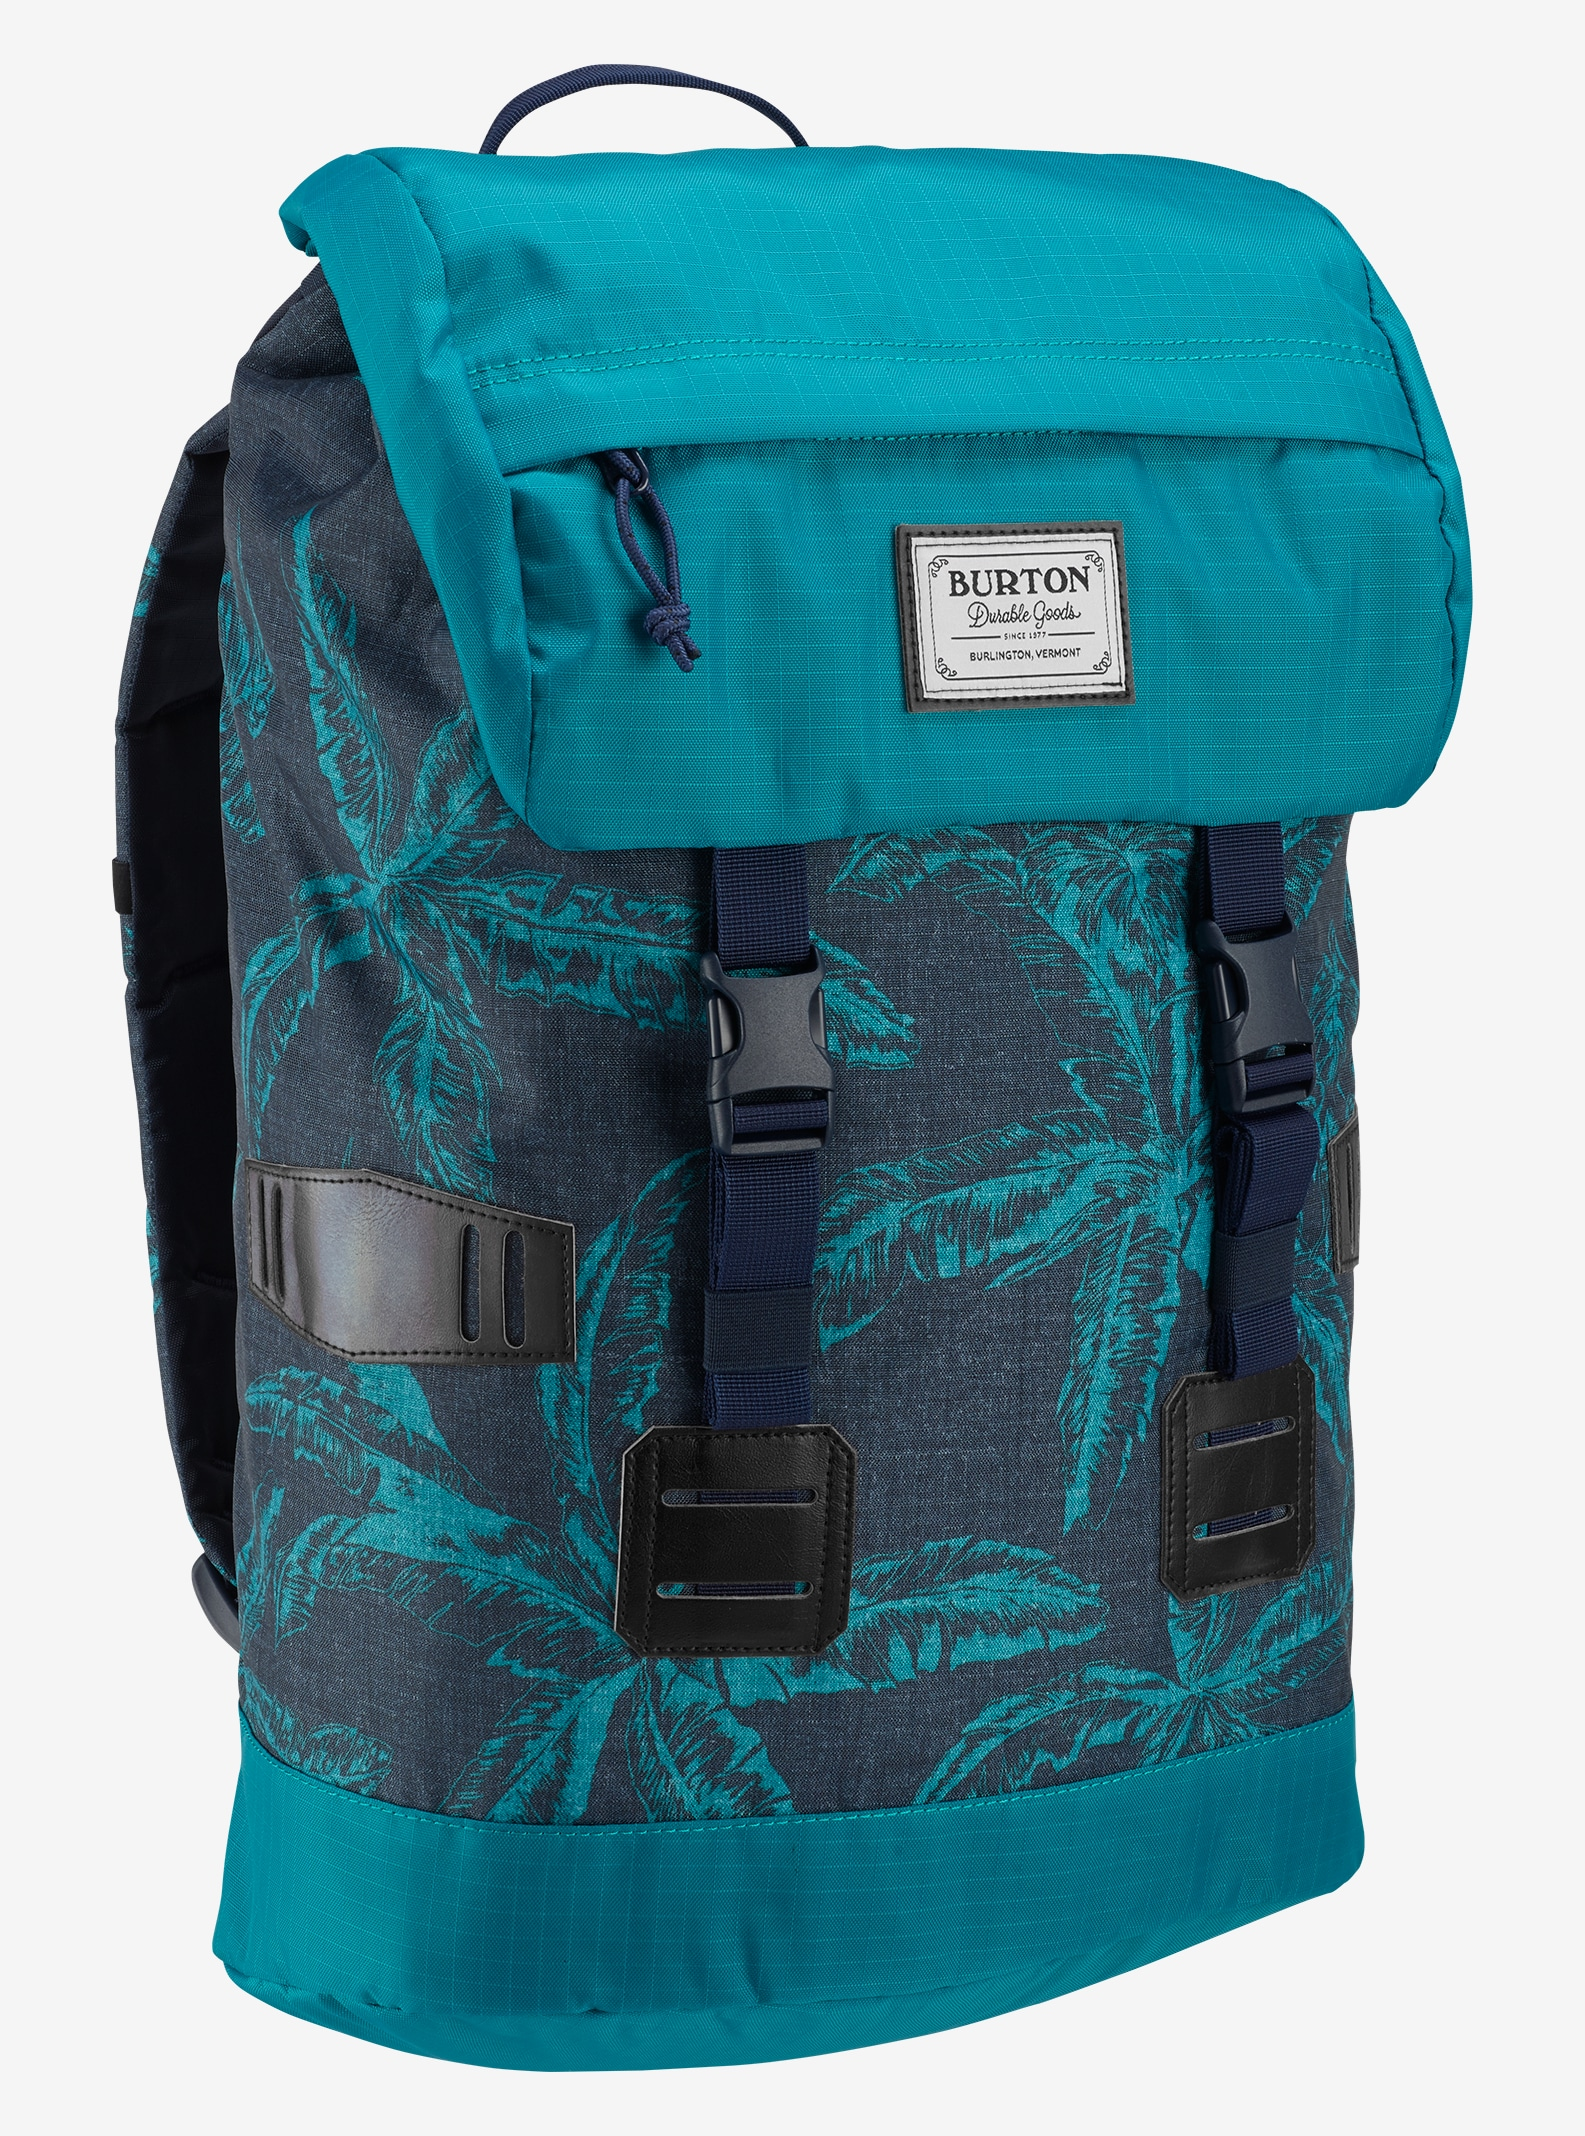 Burton Tinder Backpack shown in Tropical Print